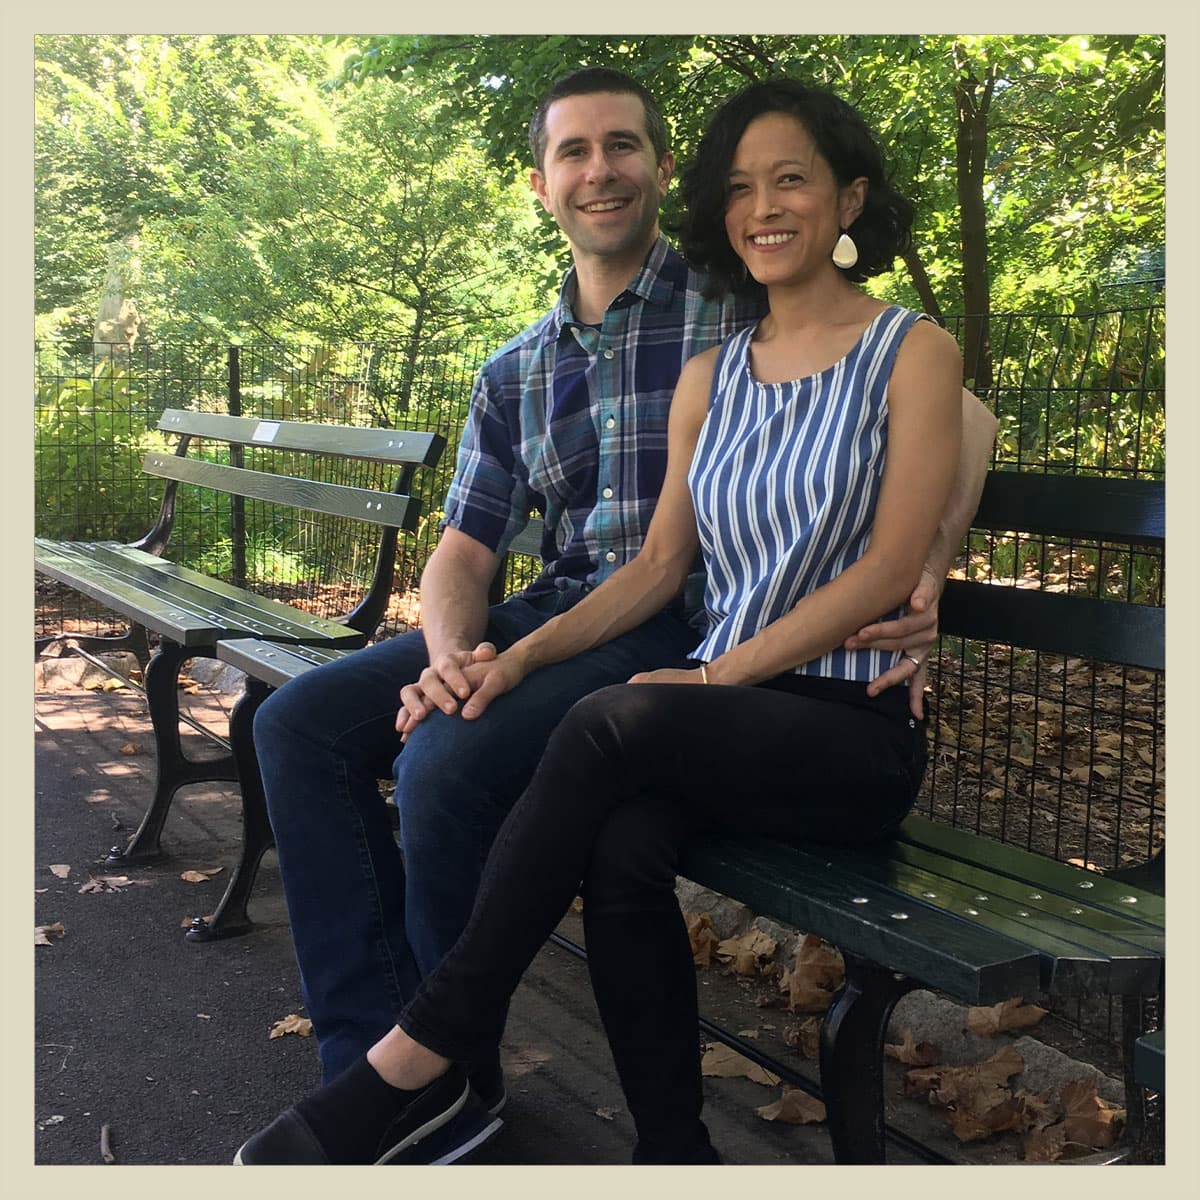 Andrew and Tiana are Looking to Adopt a Baby